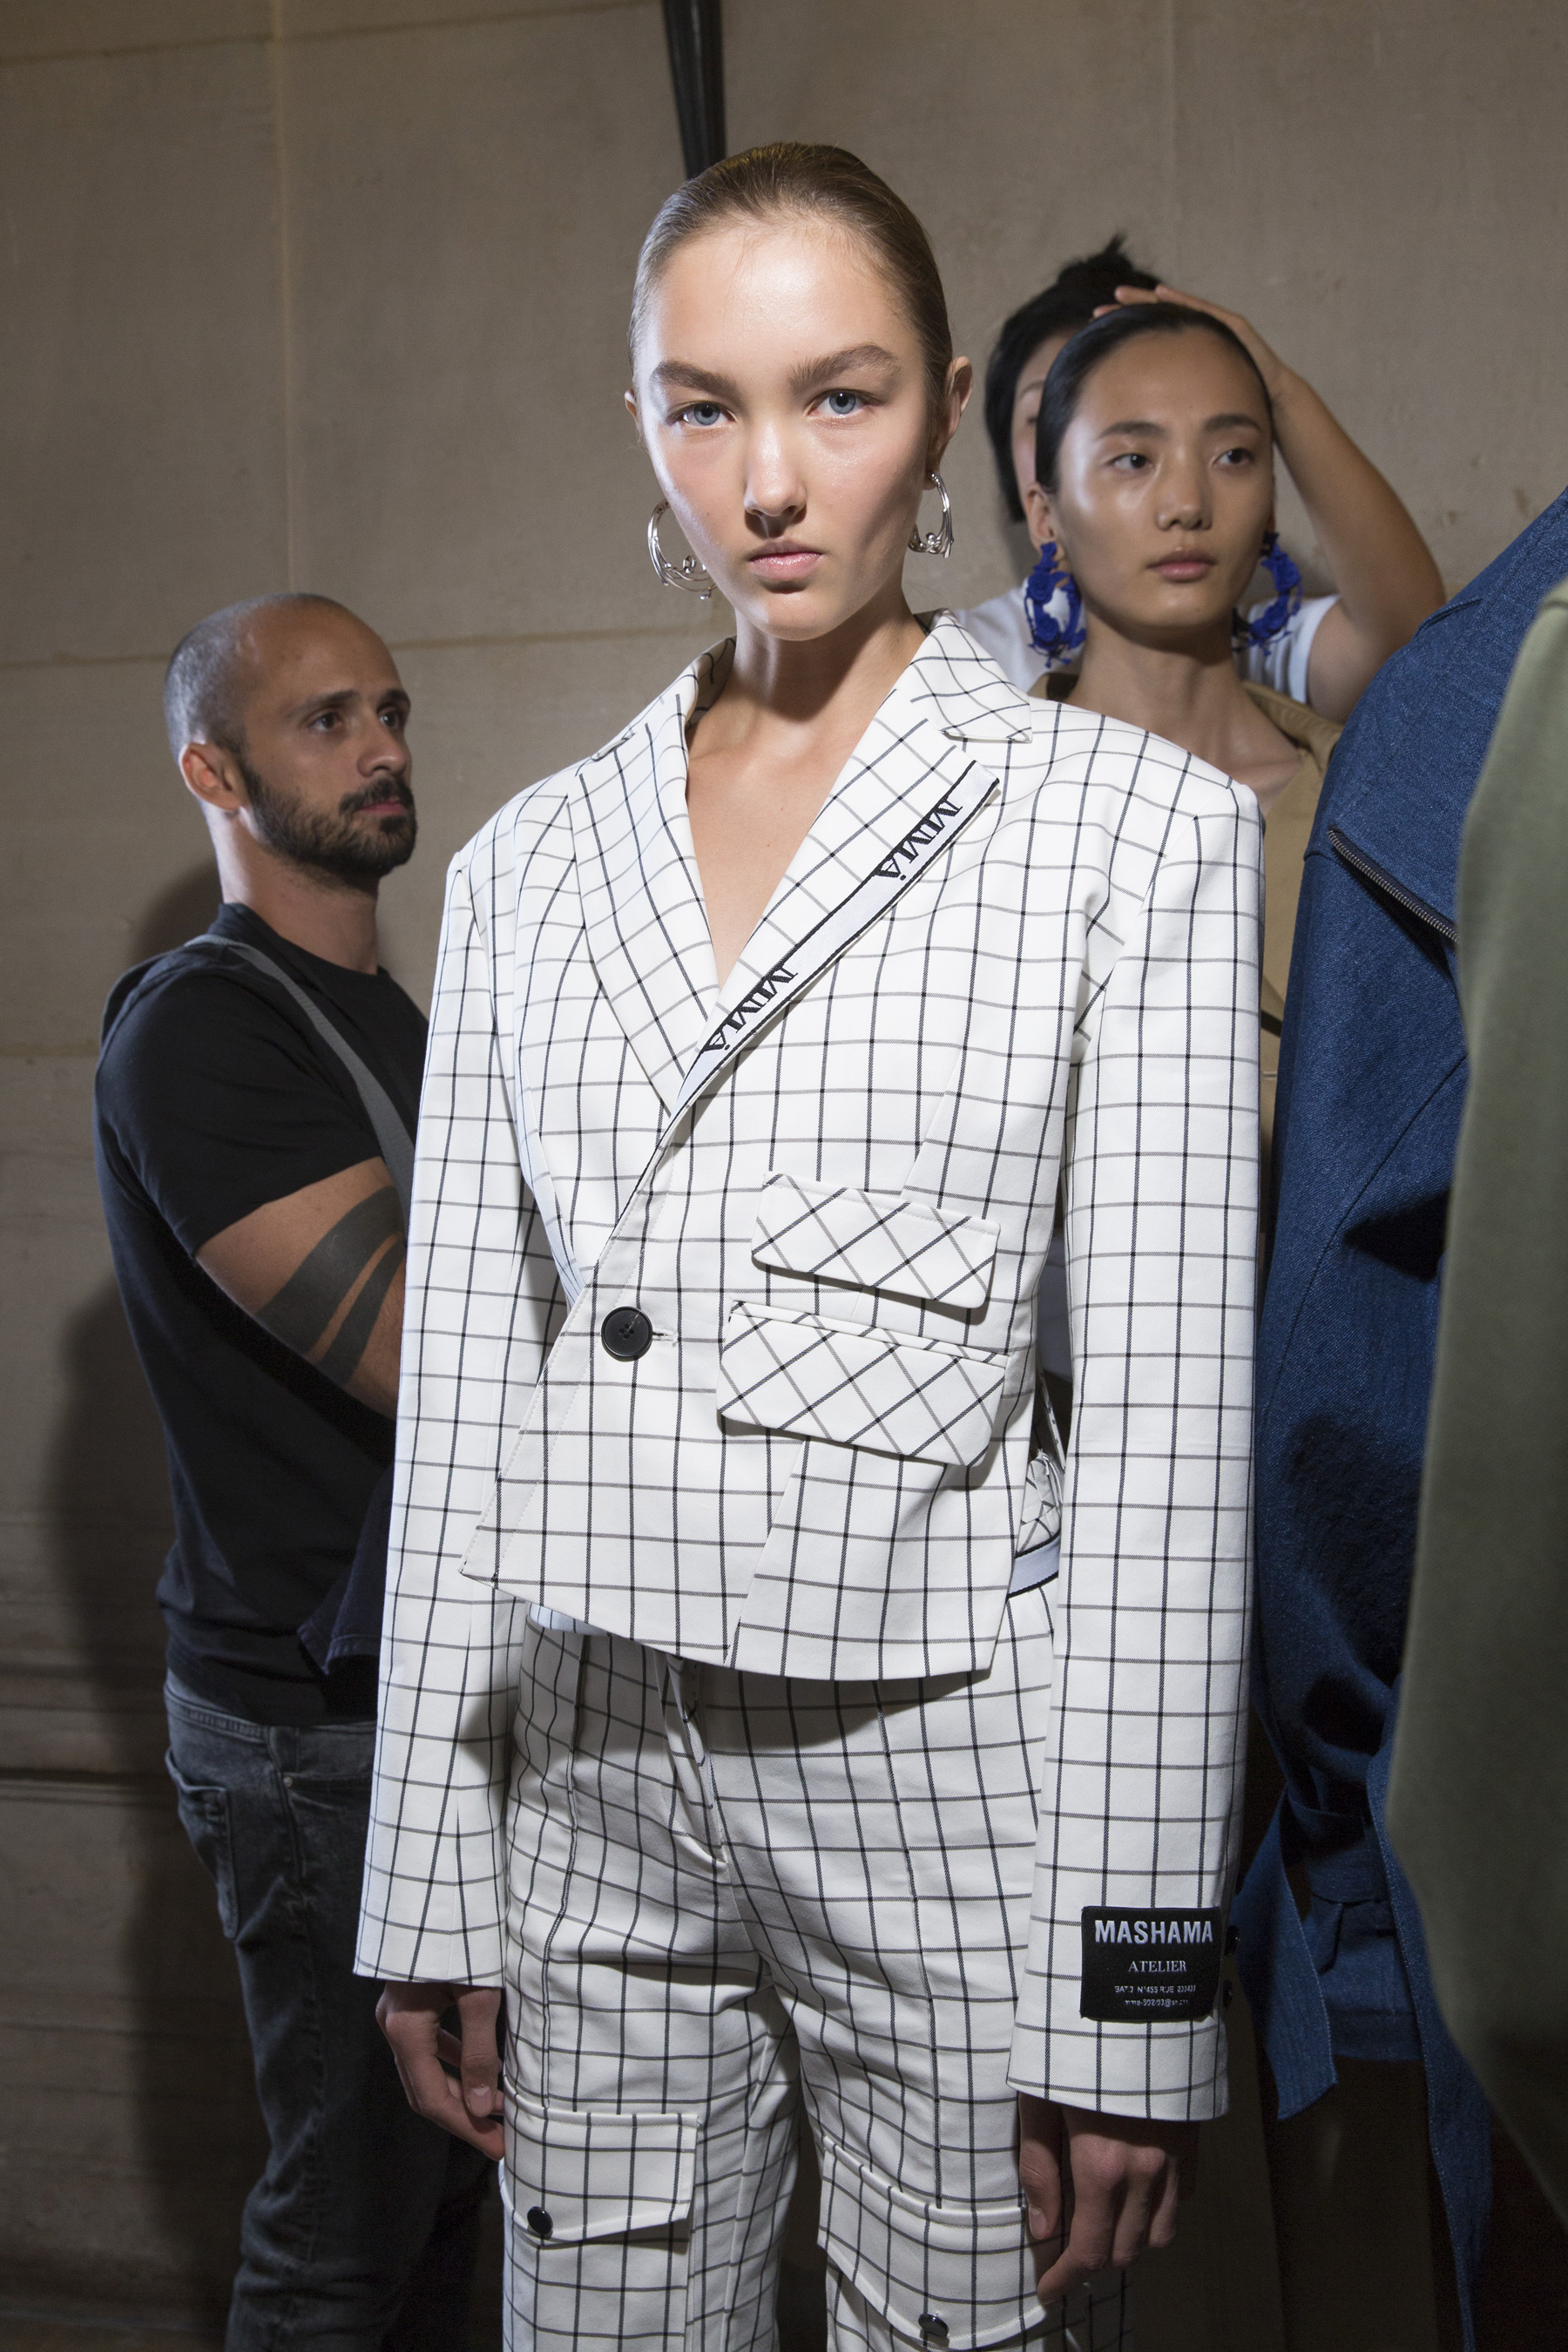 Mashama Spring 2019  Fashion Show Backstage